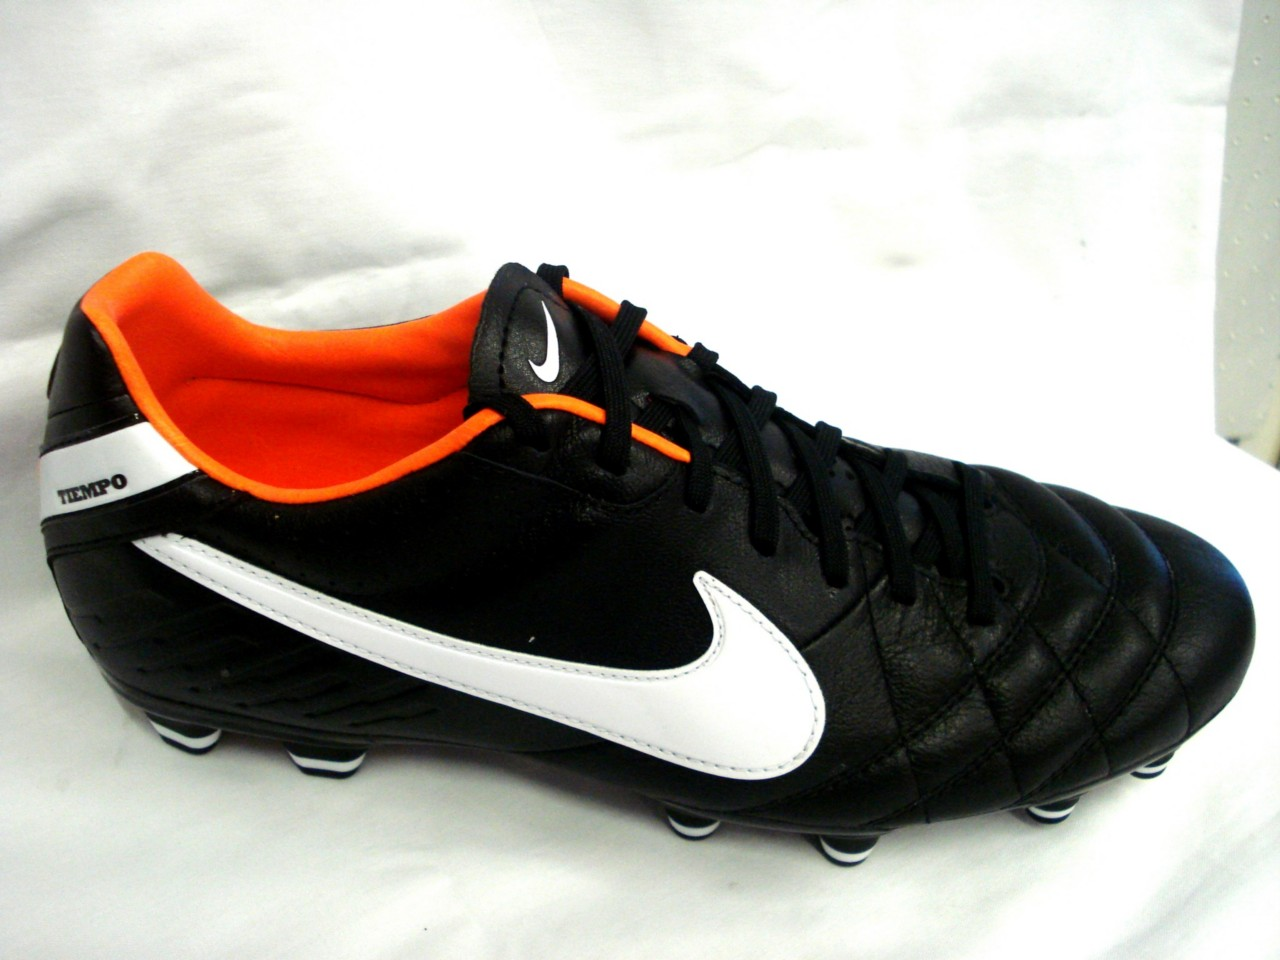 nike tiempo mystic iv fg mens football boots size uk 8 11. Black Bedroom Furniture Sets. Home Design Ideas